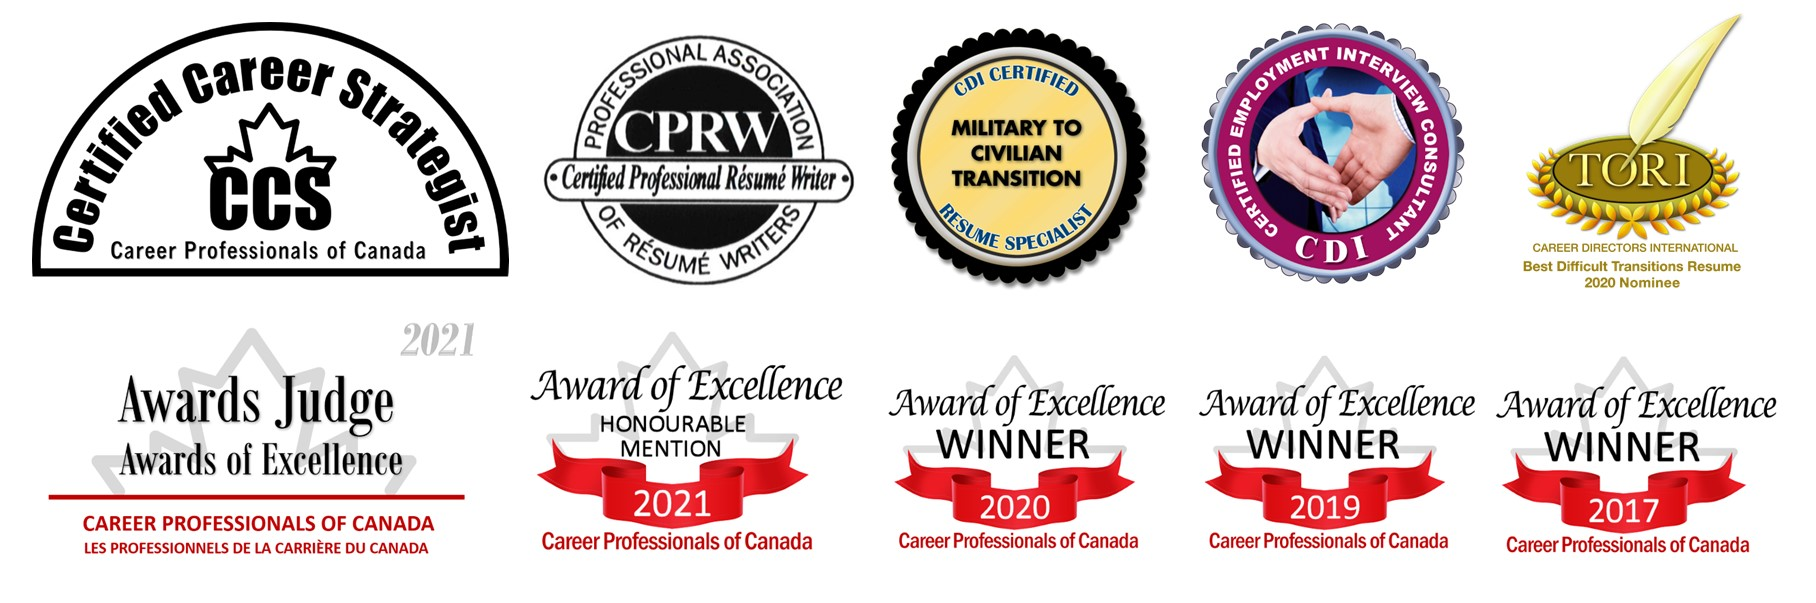 Image displaying 4 certifications and 6 awards and nominations.